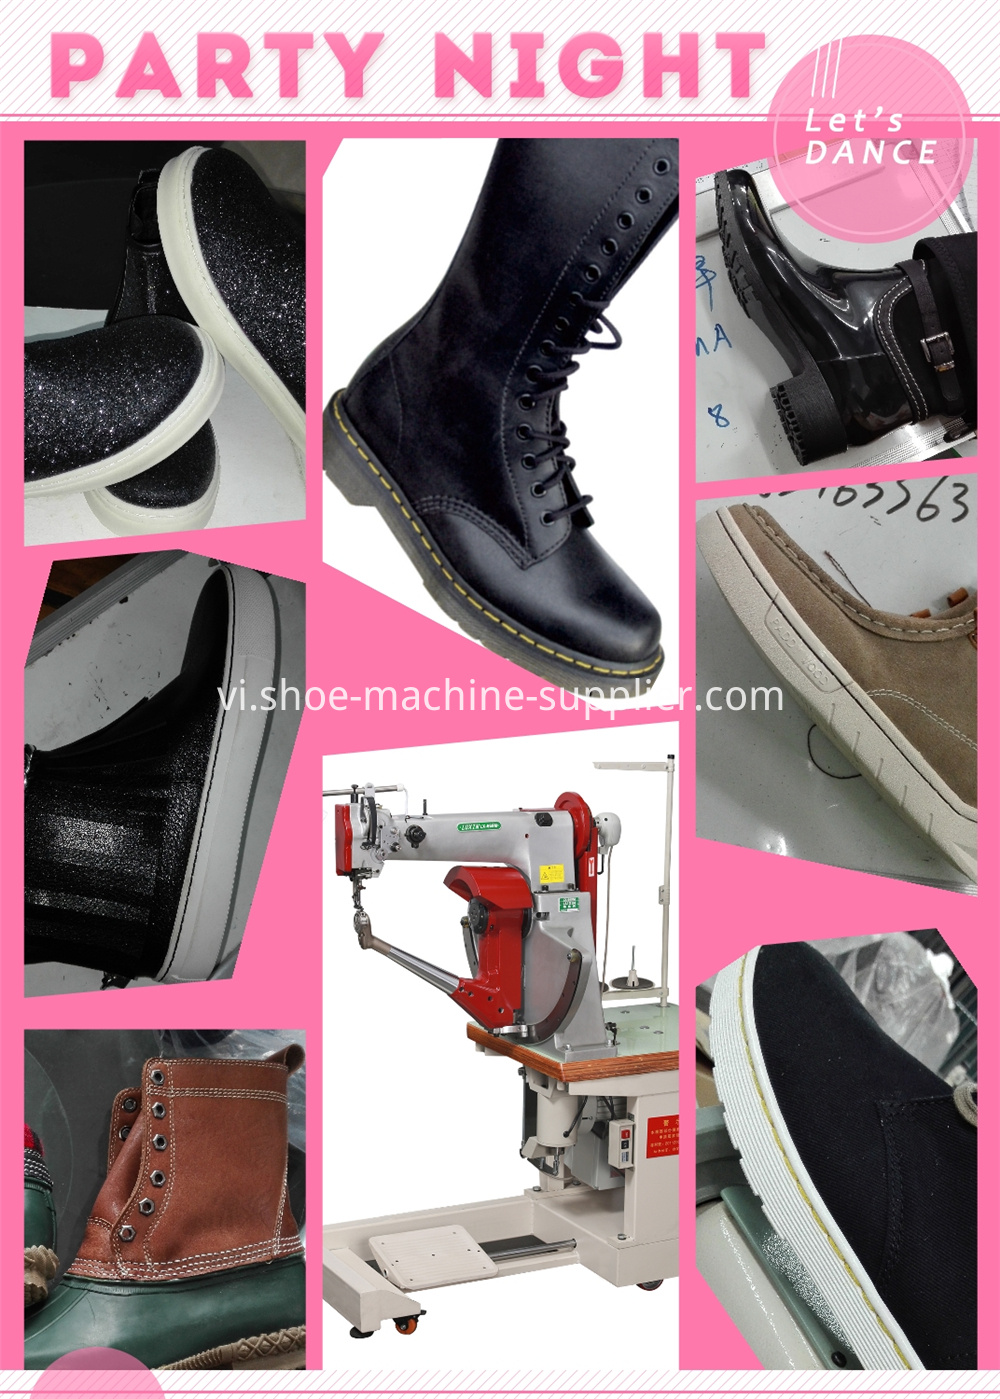 Sewing Machine For Shoes And Bags